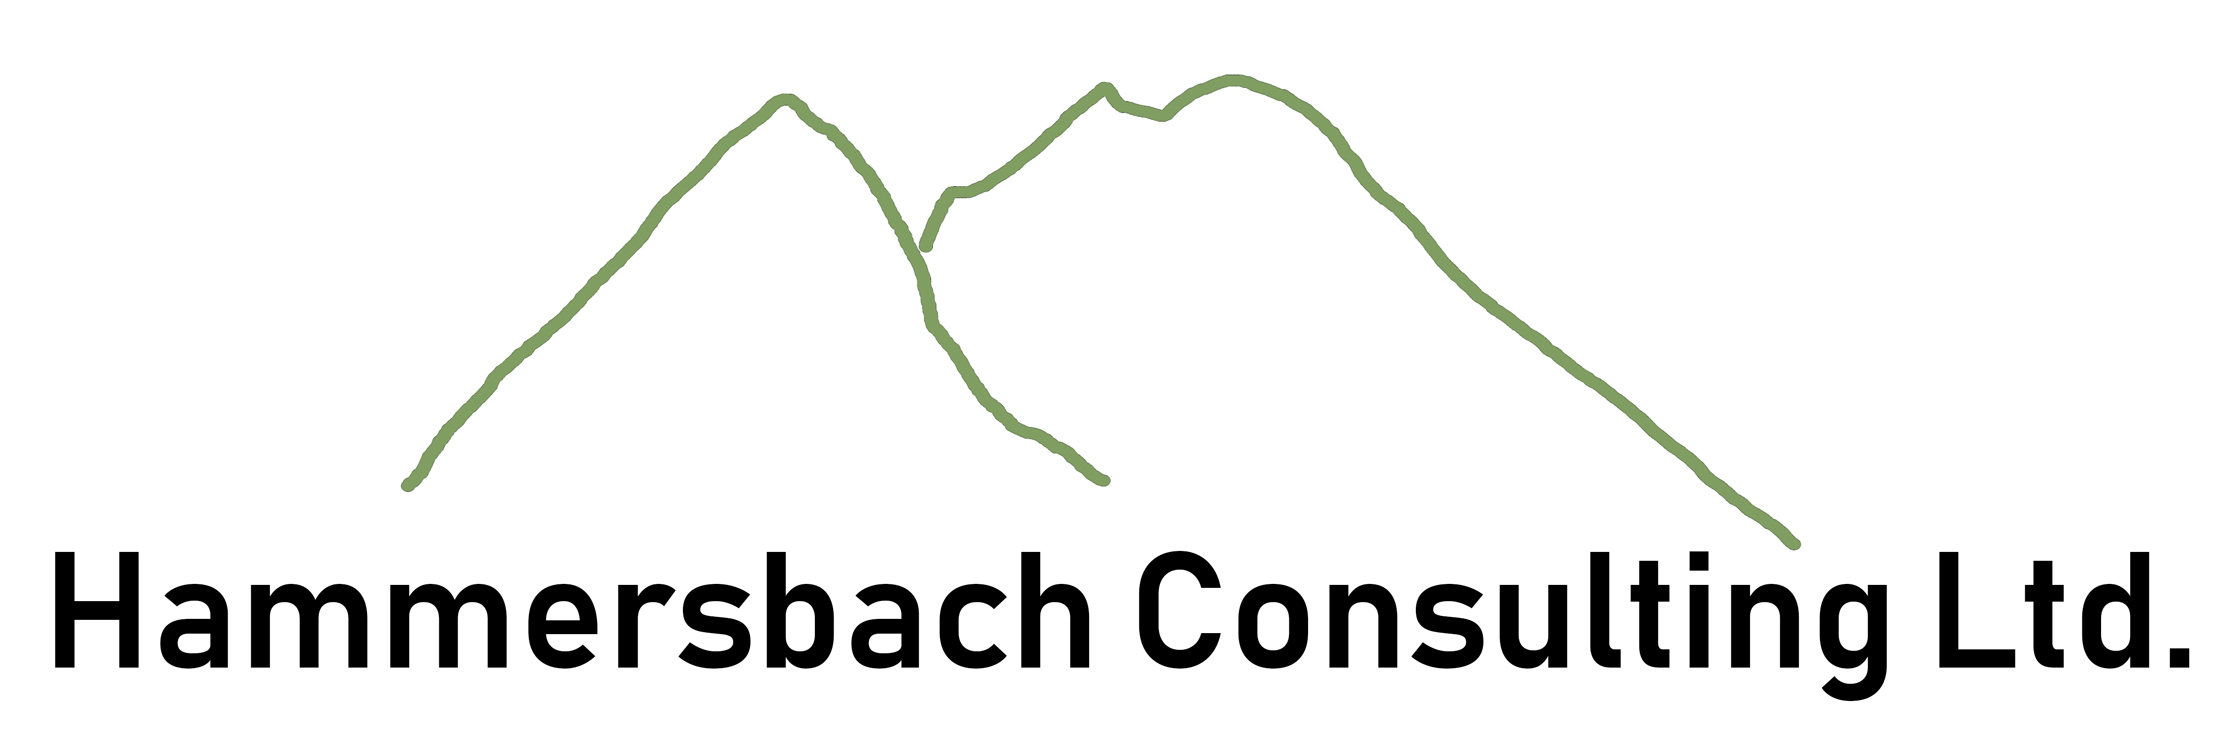 Hammersbach Consulting